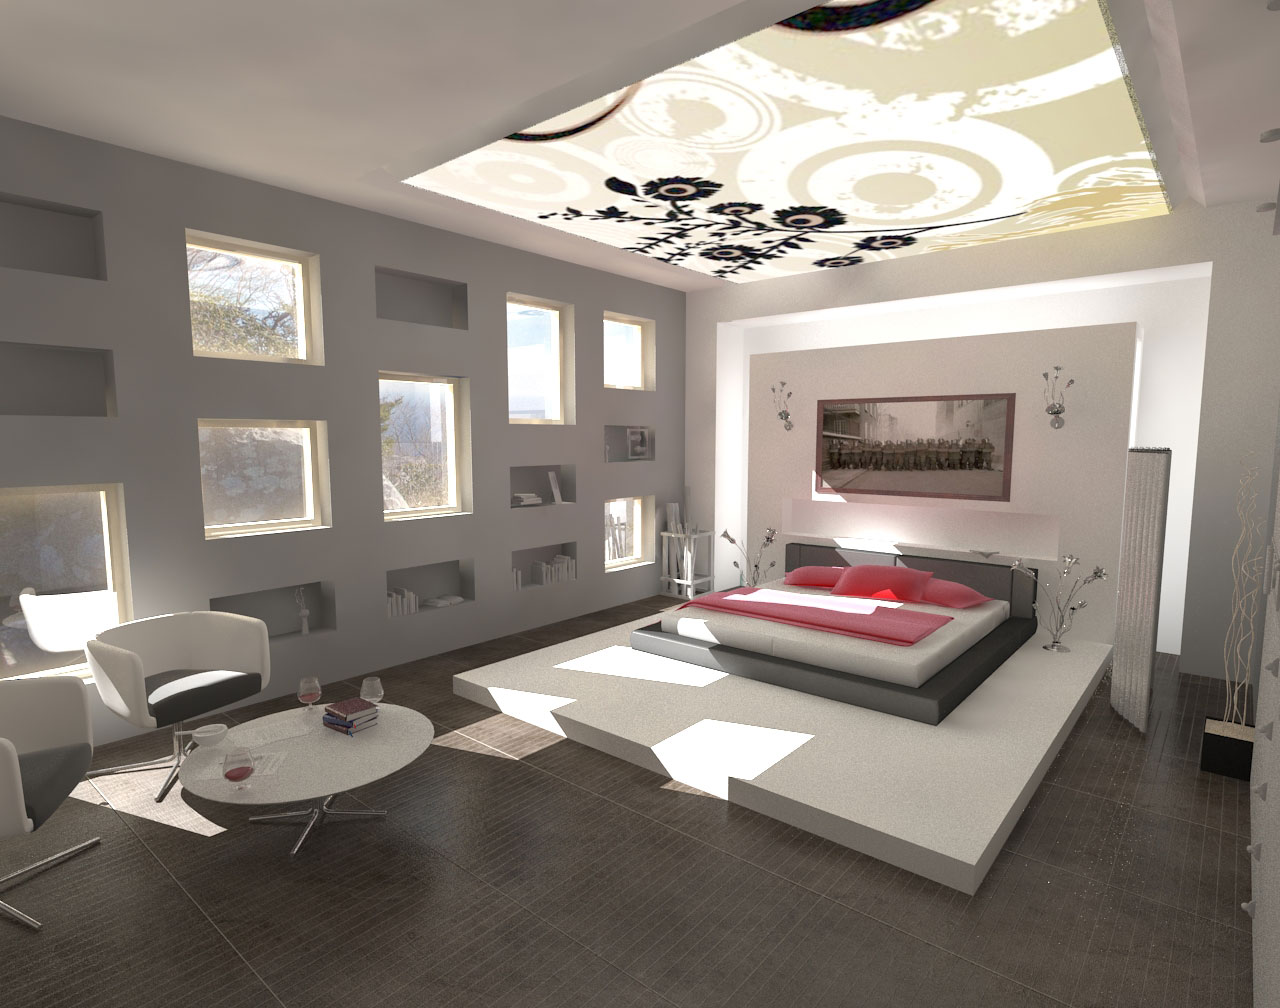 Interior design ideas fantastic modern bedroom paints for Contemporary interior designer